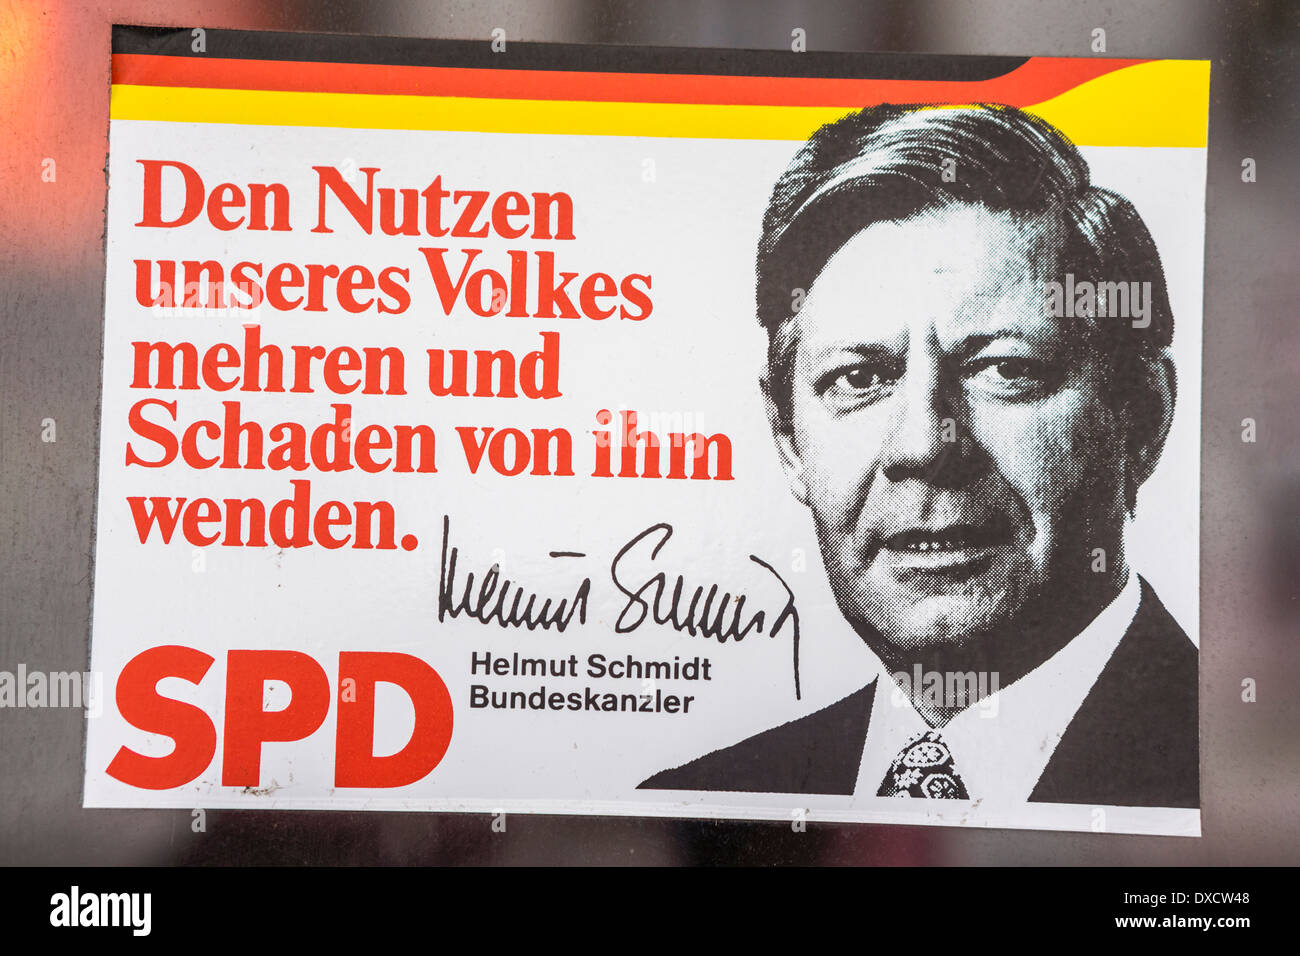 old campaign sticker of the german social democrats party, spd, showing a portrait of the former chancellor helmut schmidt - Stock Image